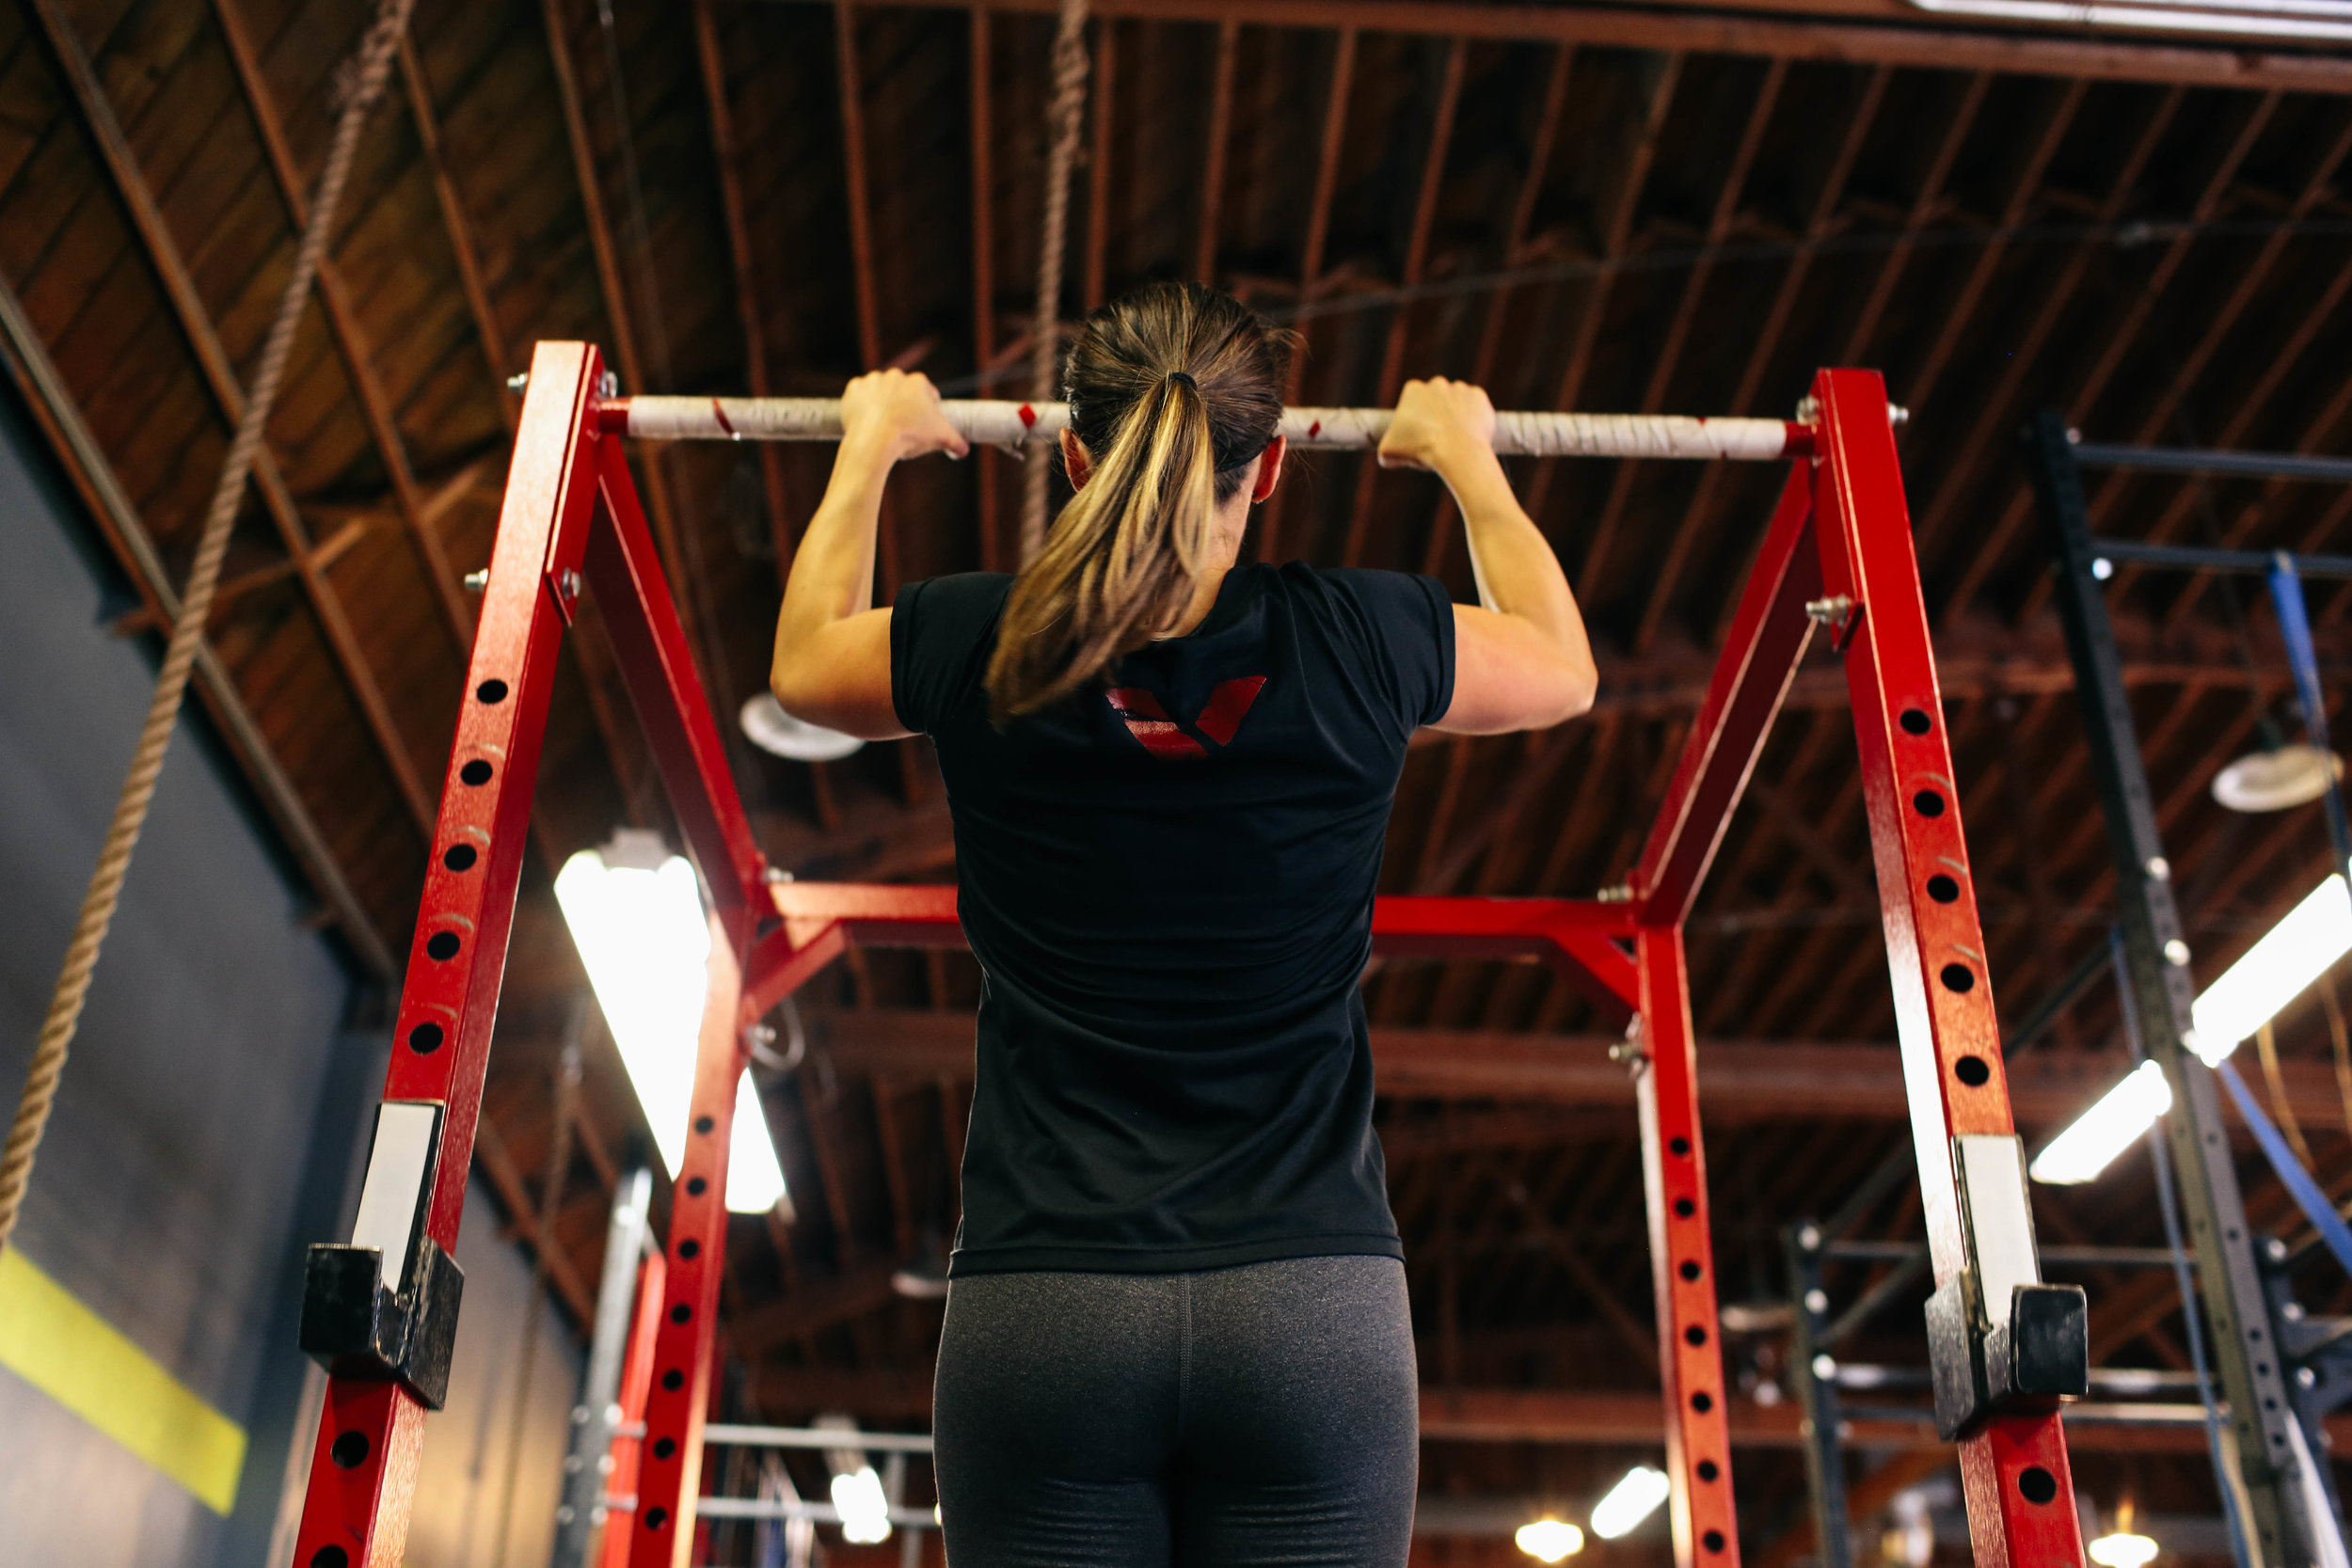 Pull-ups and ponytails are a common sight in any Volt-equipped weight room.